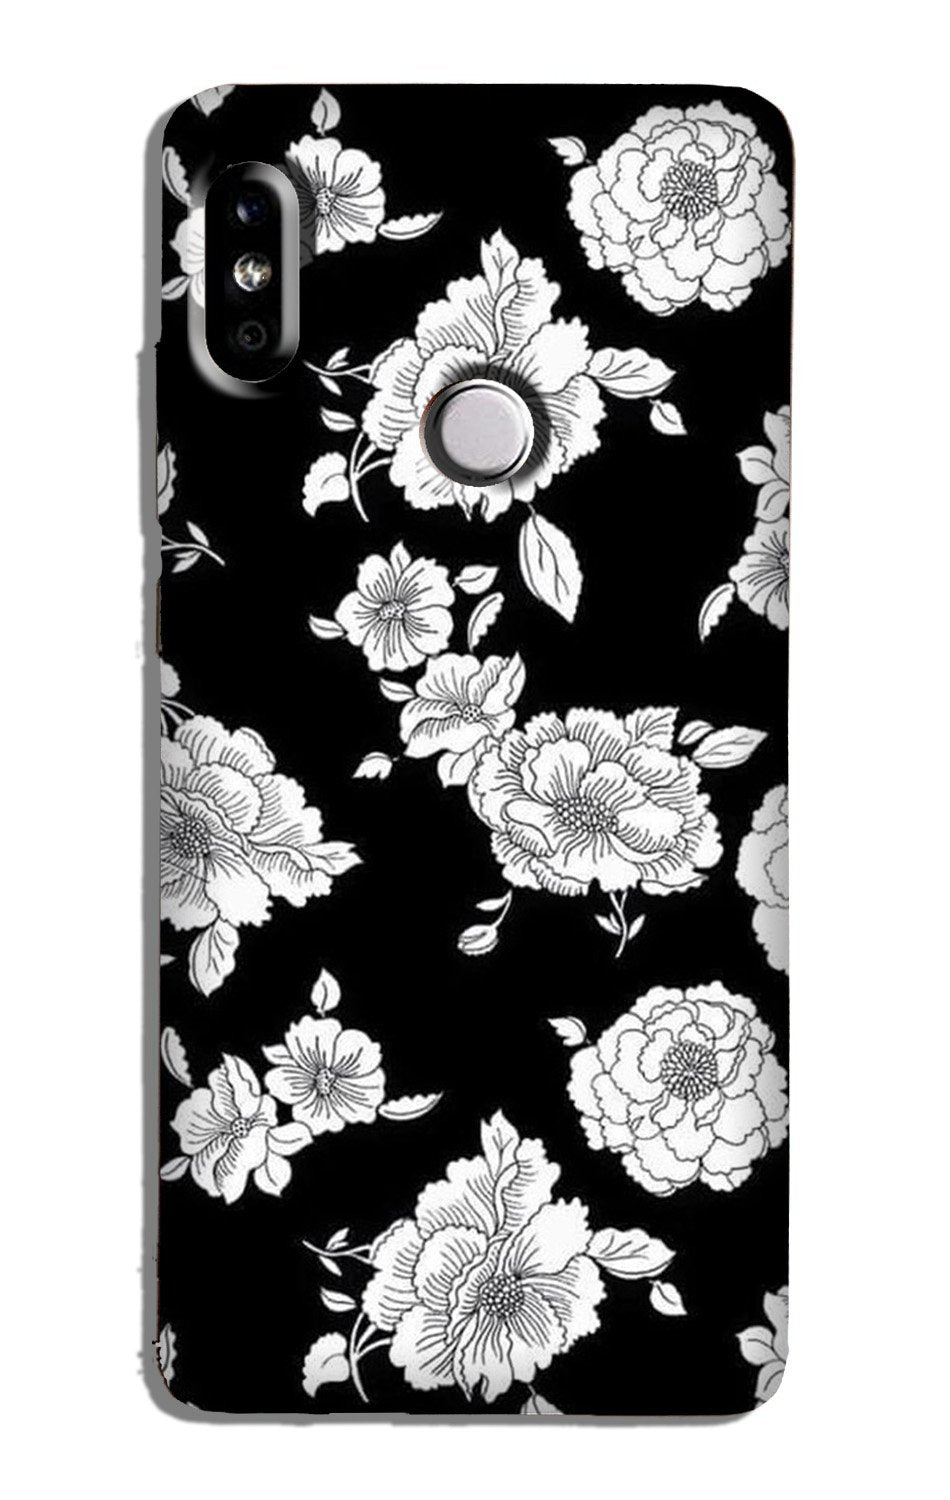 White flowers Black Background Case for Redmi Note 5 Pro